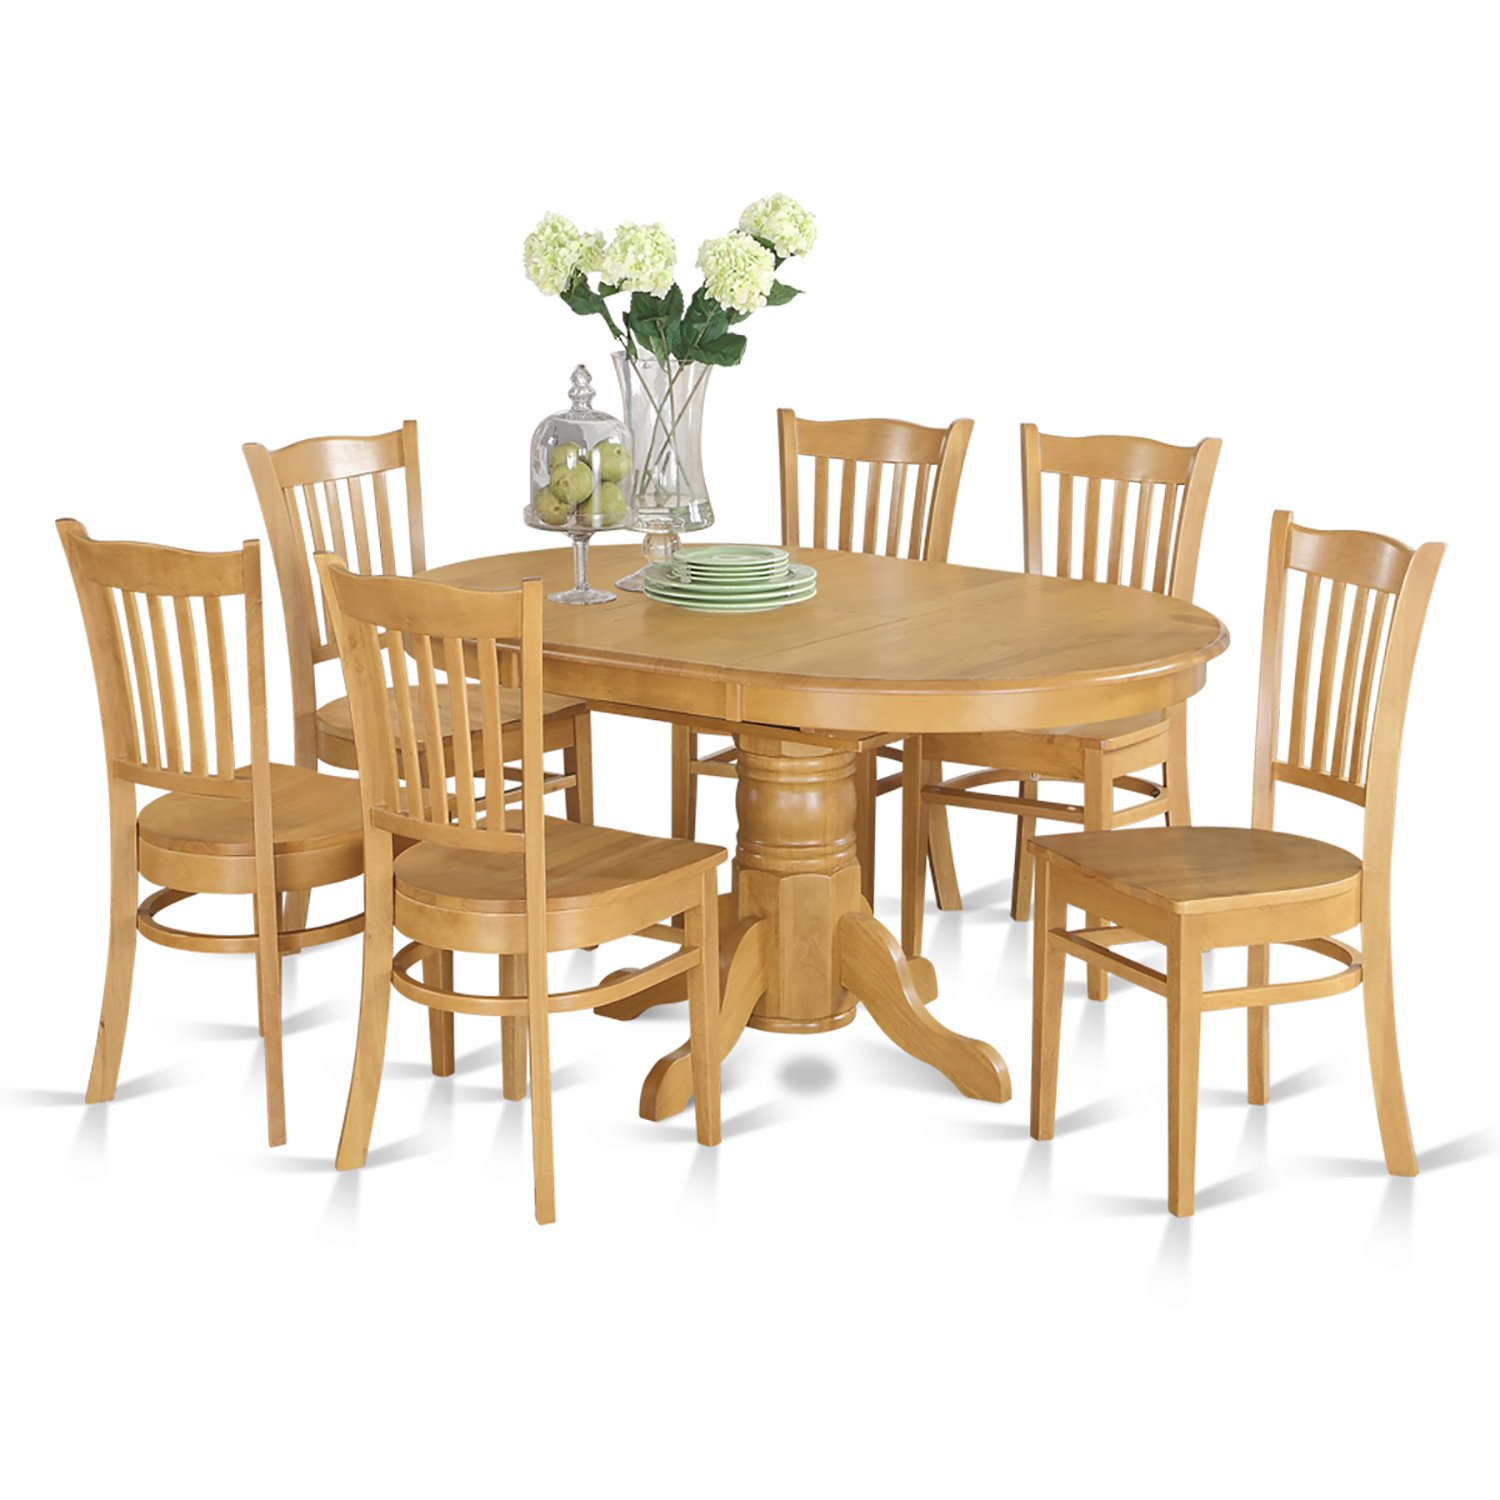 AVGR7-OAK-W 7 Pc formal Dining room set- Oval dinette Table with Leaf and 6 Dining Chairs.